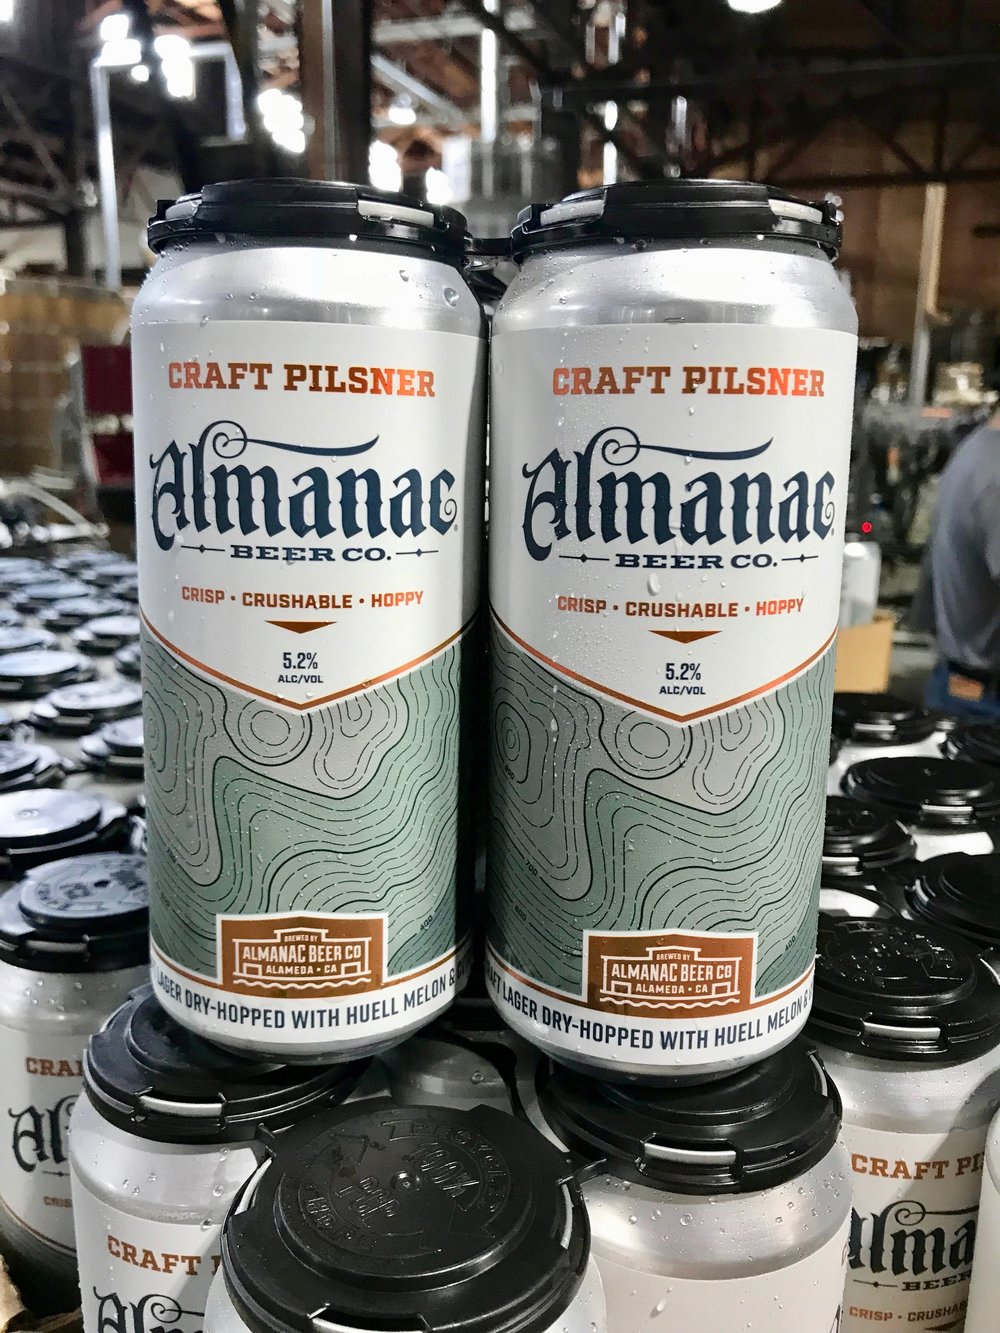 Almanac Beer Co. Craft Pilsner can design by DKNG